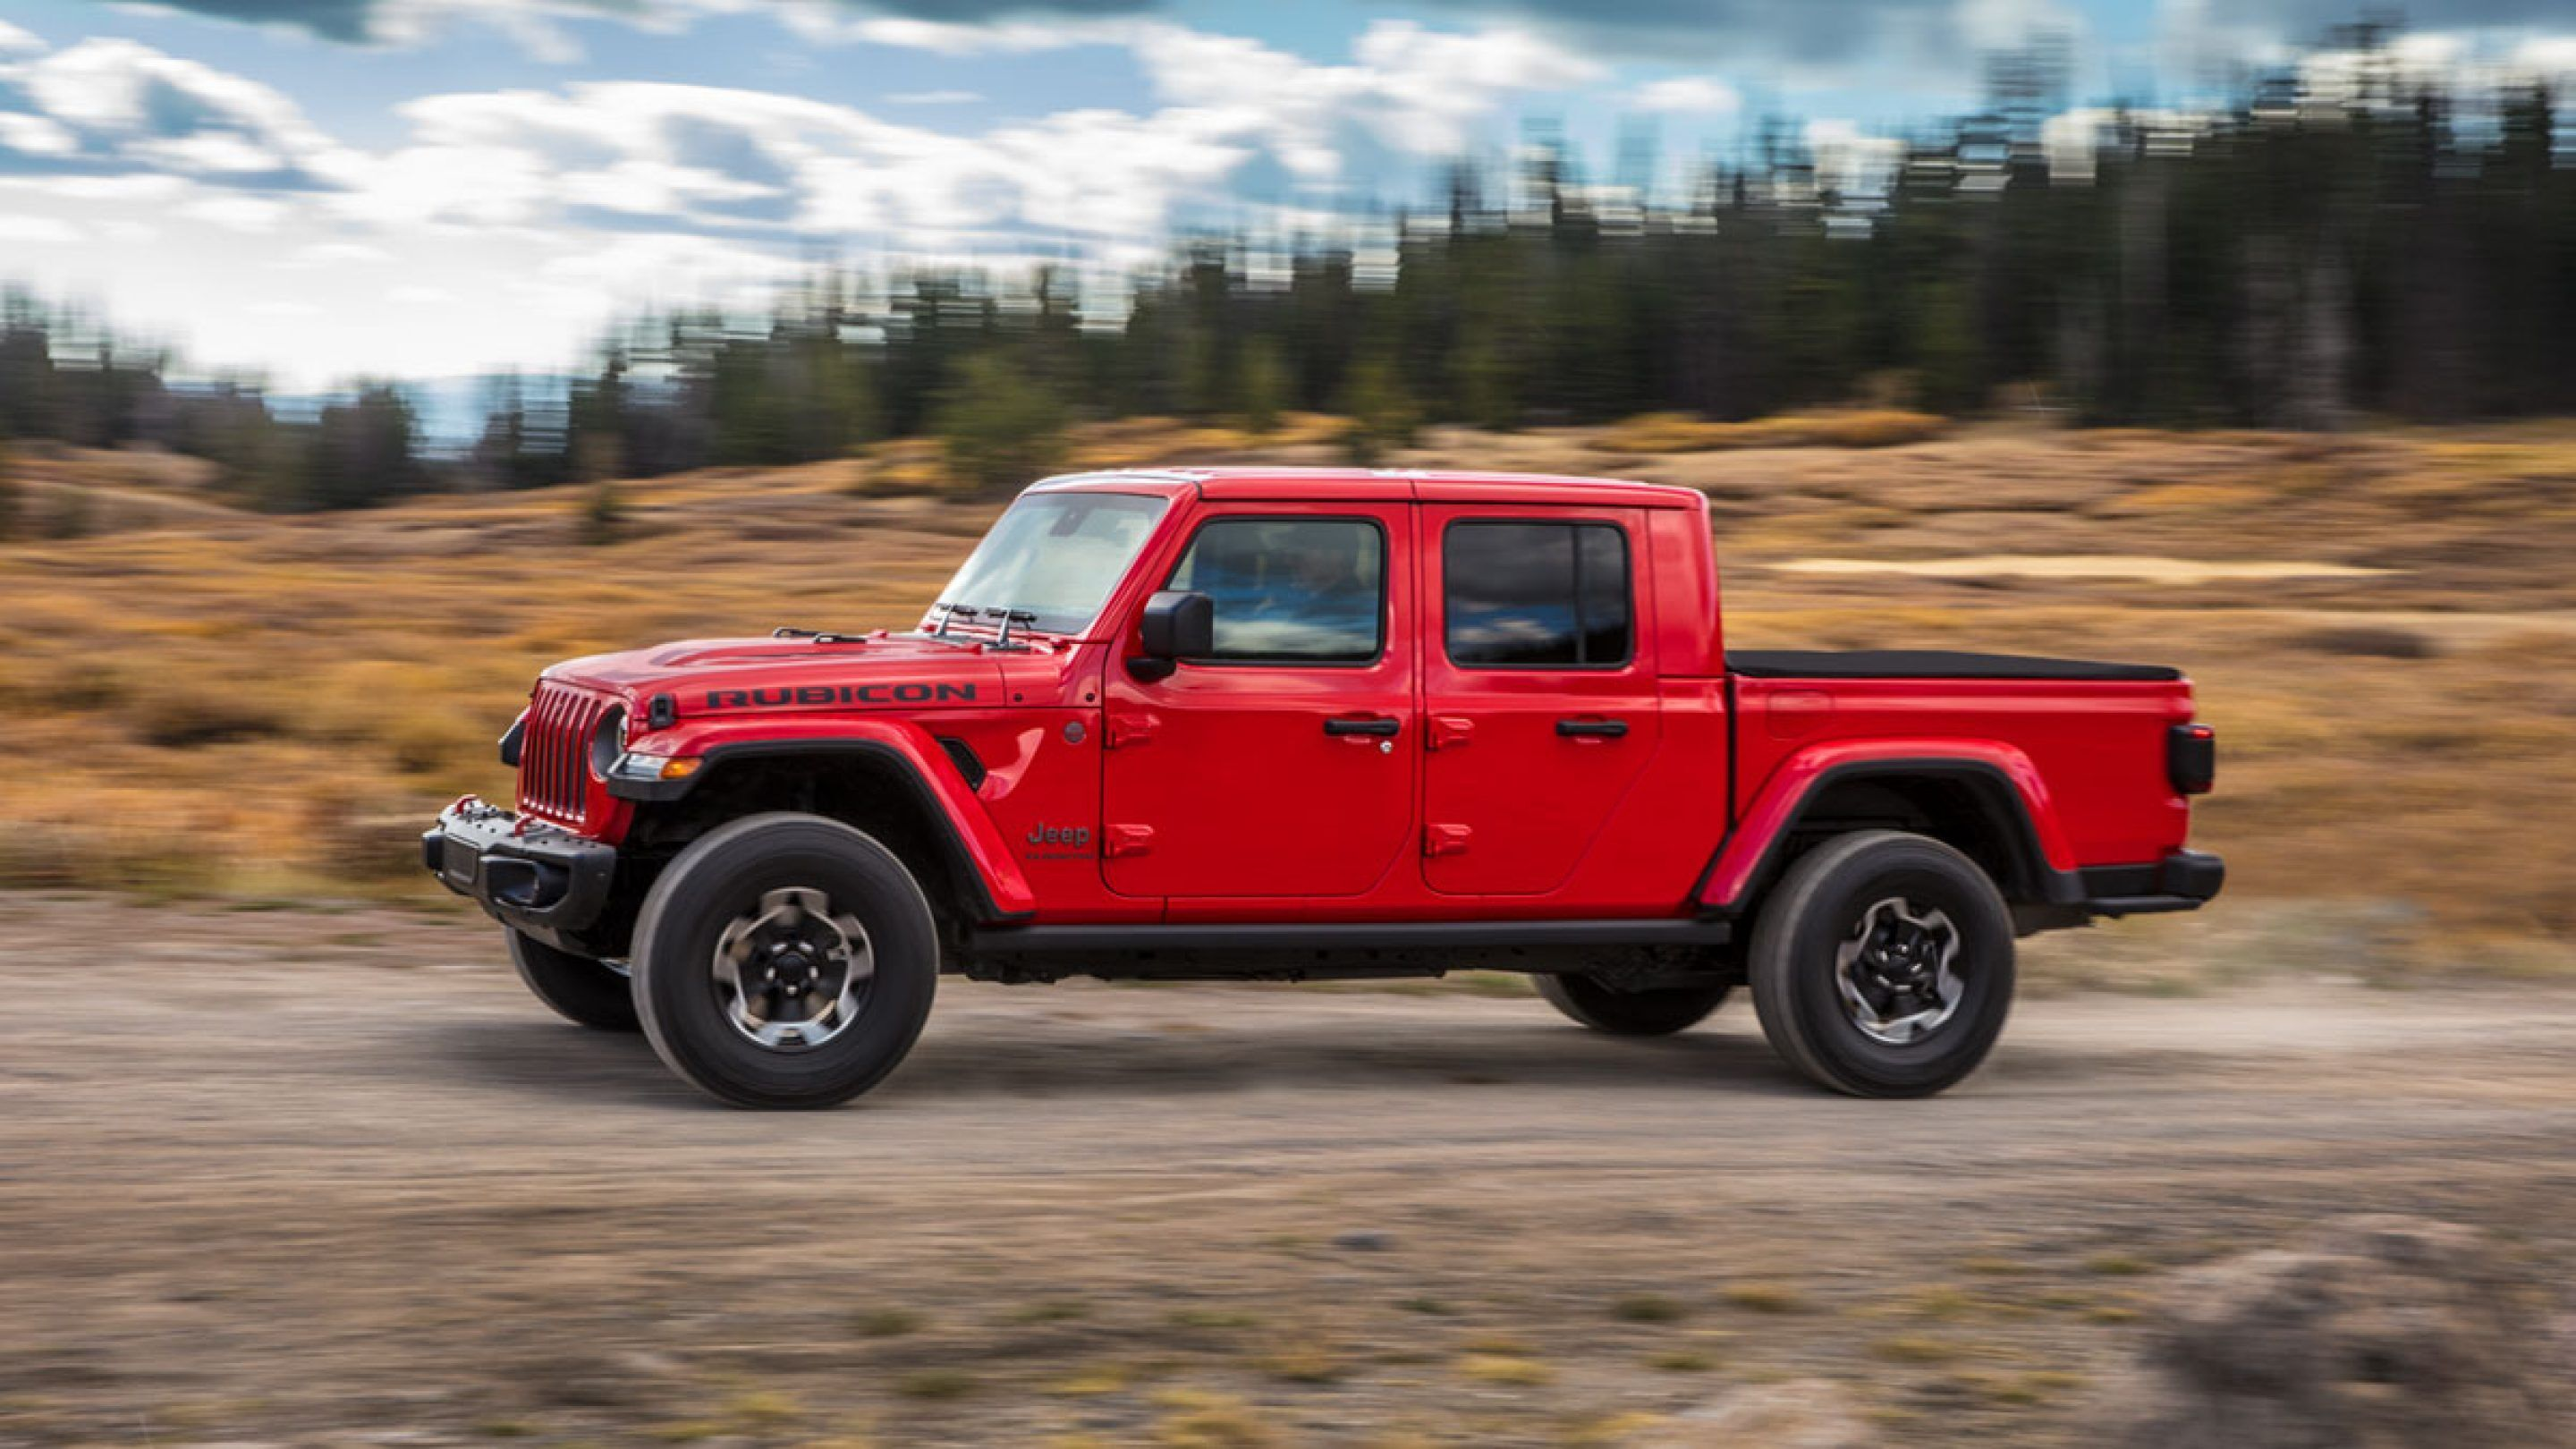 2020 Jeep Gladiator Official Gallery Jeep Gladiator Pickup Trucks Jeep Pickup